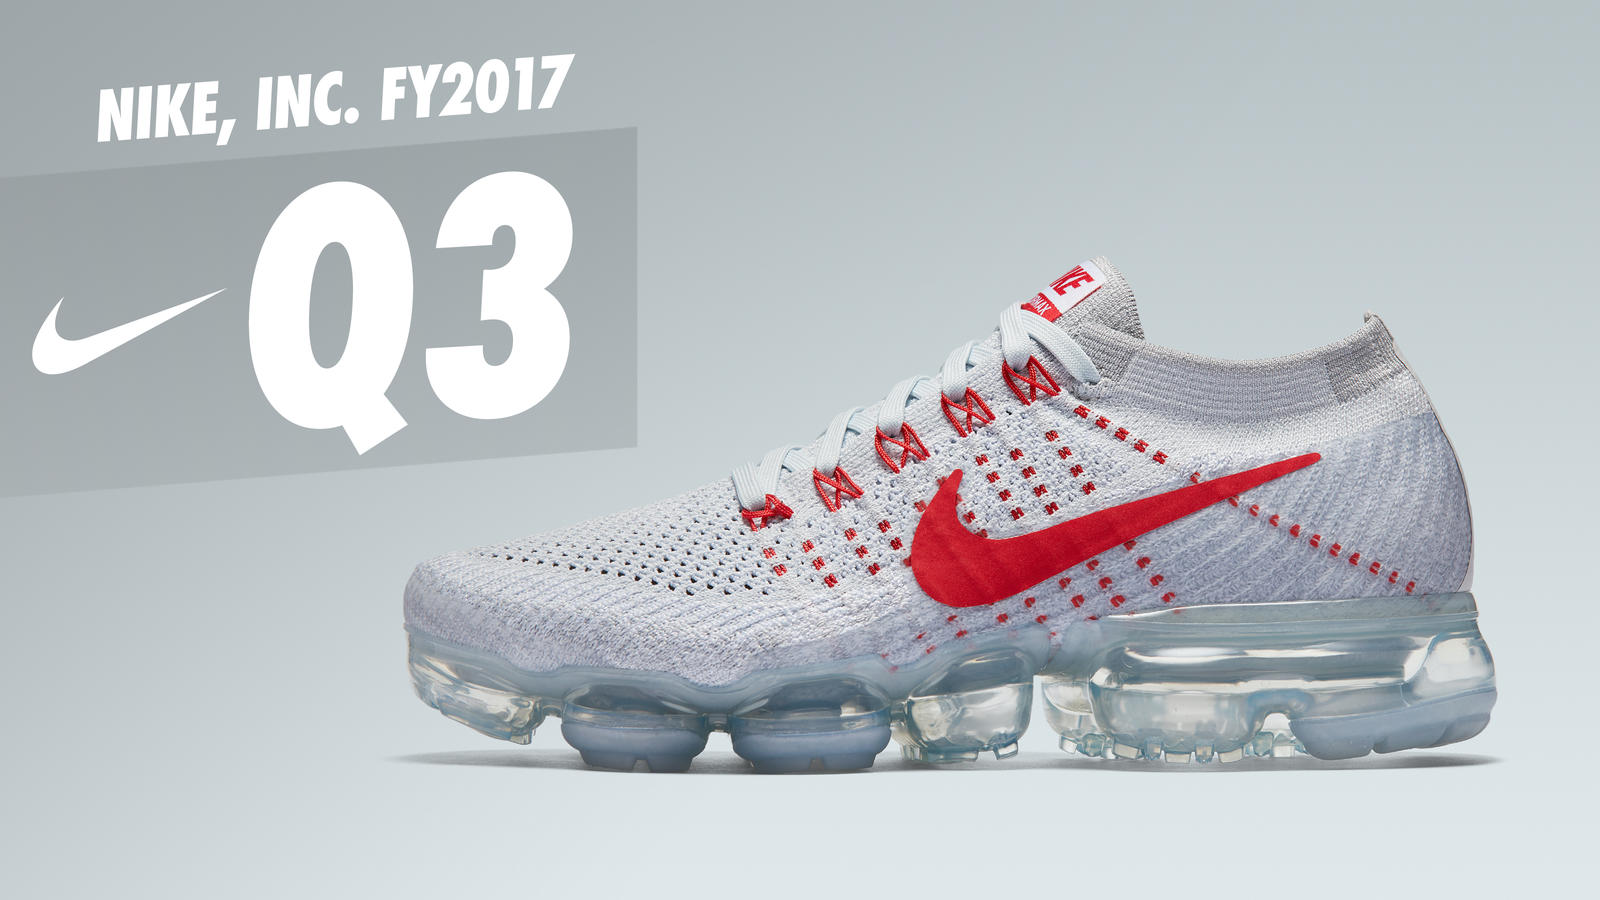 free run nike 2017 annual report